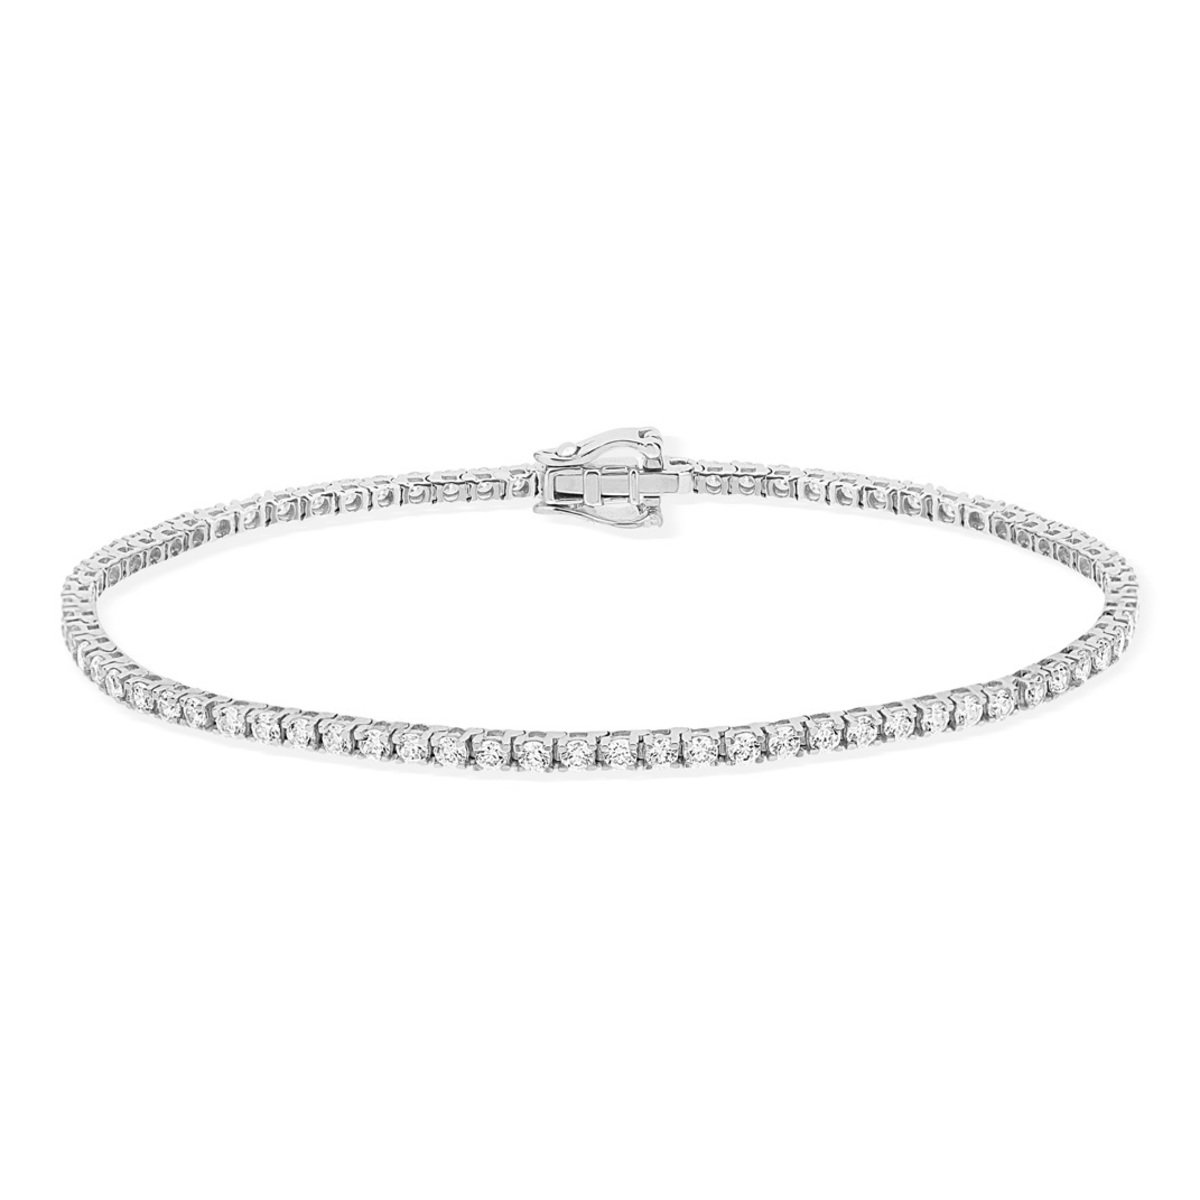 Bracelet or 750 blanc diamant synthétique - vue 2